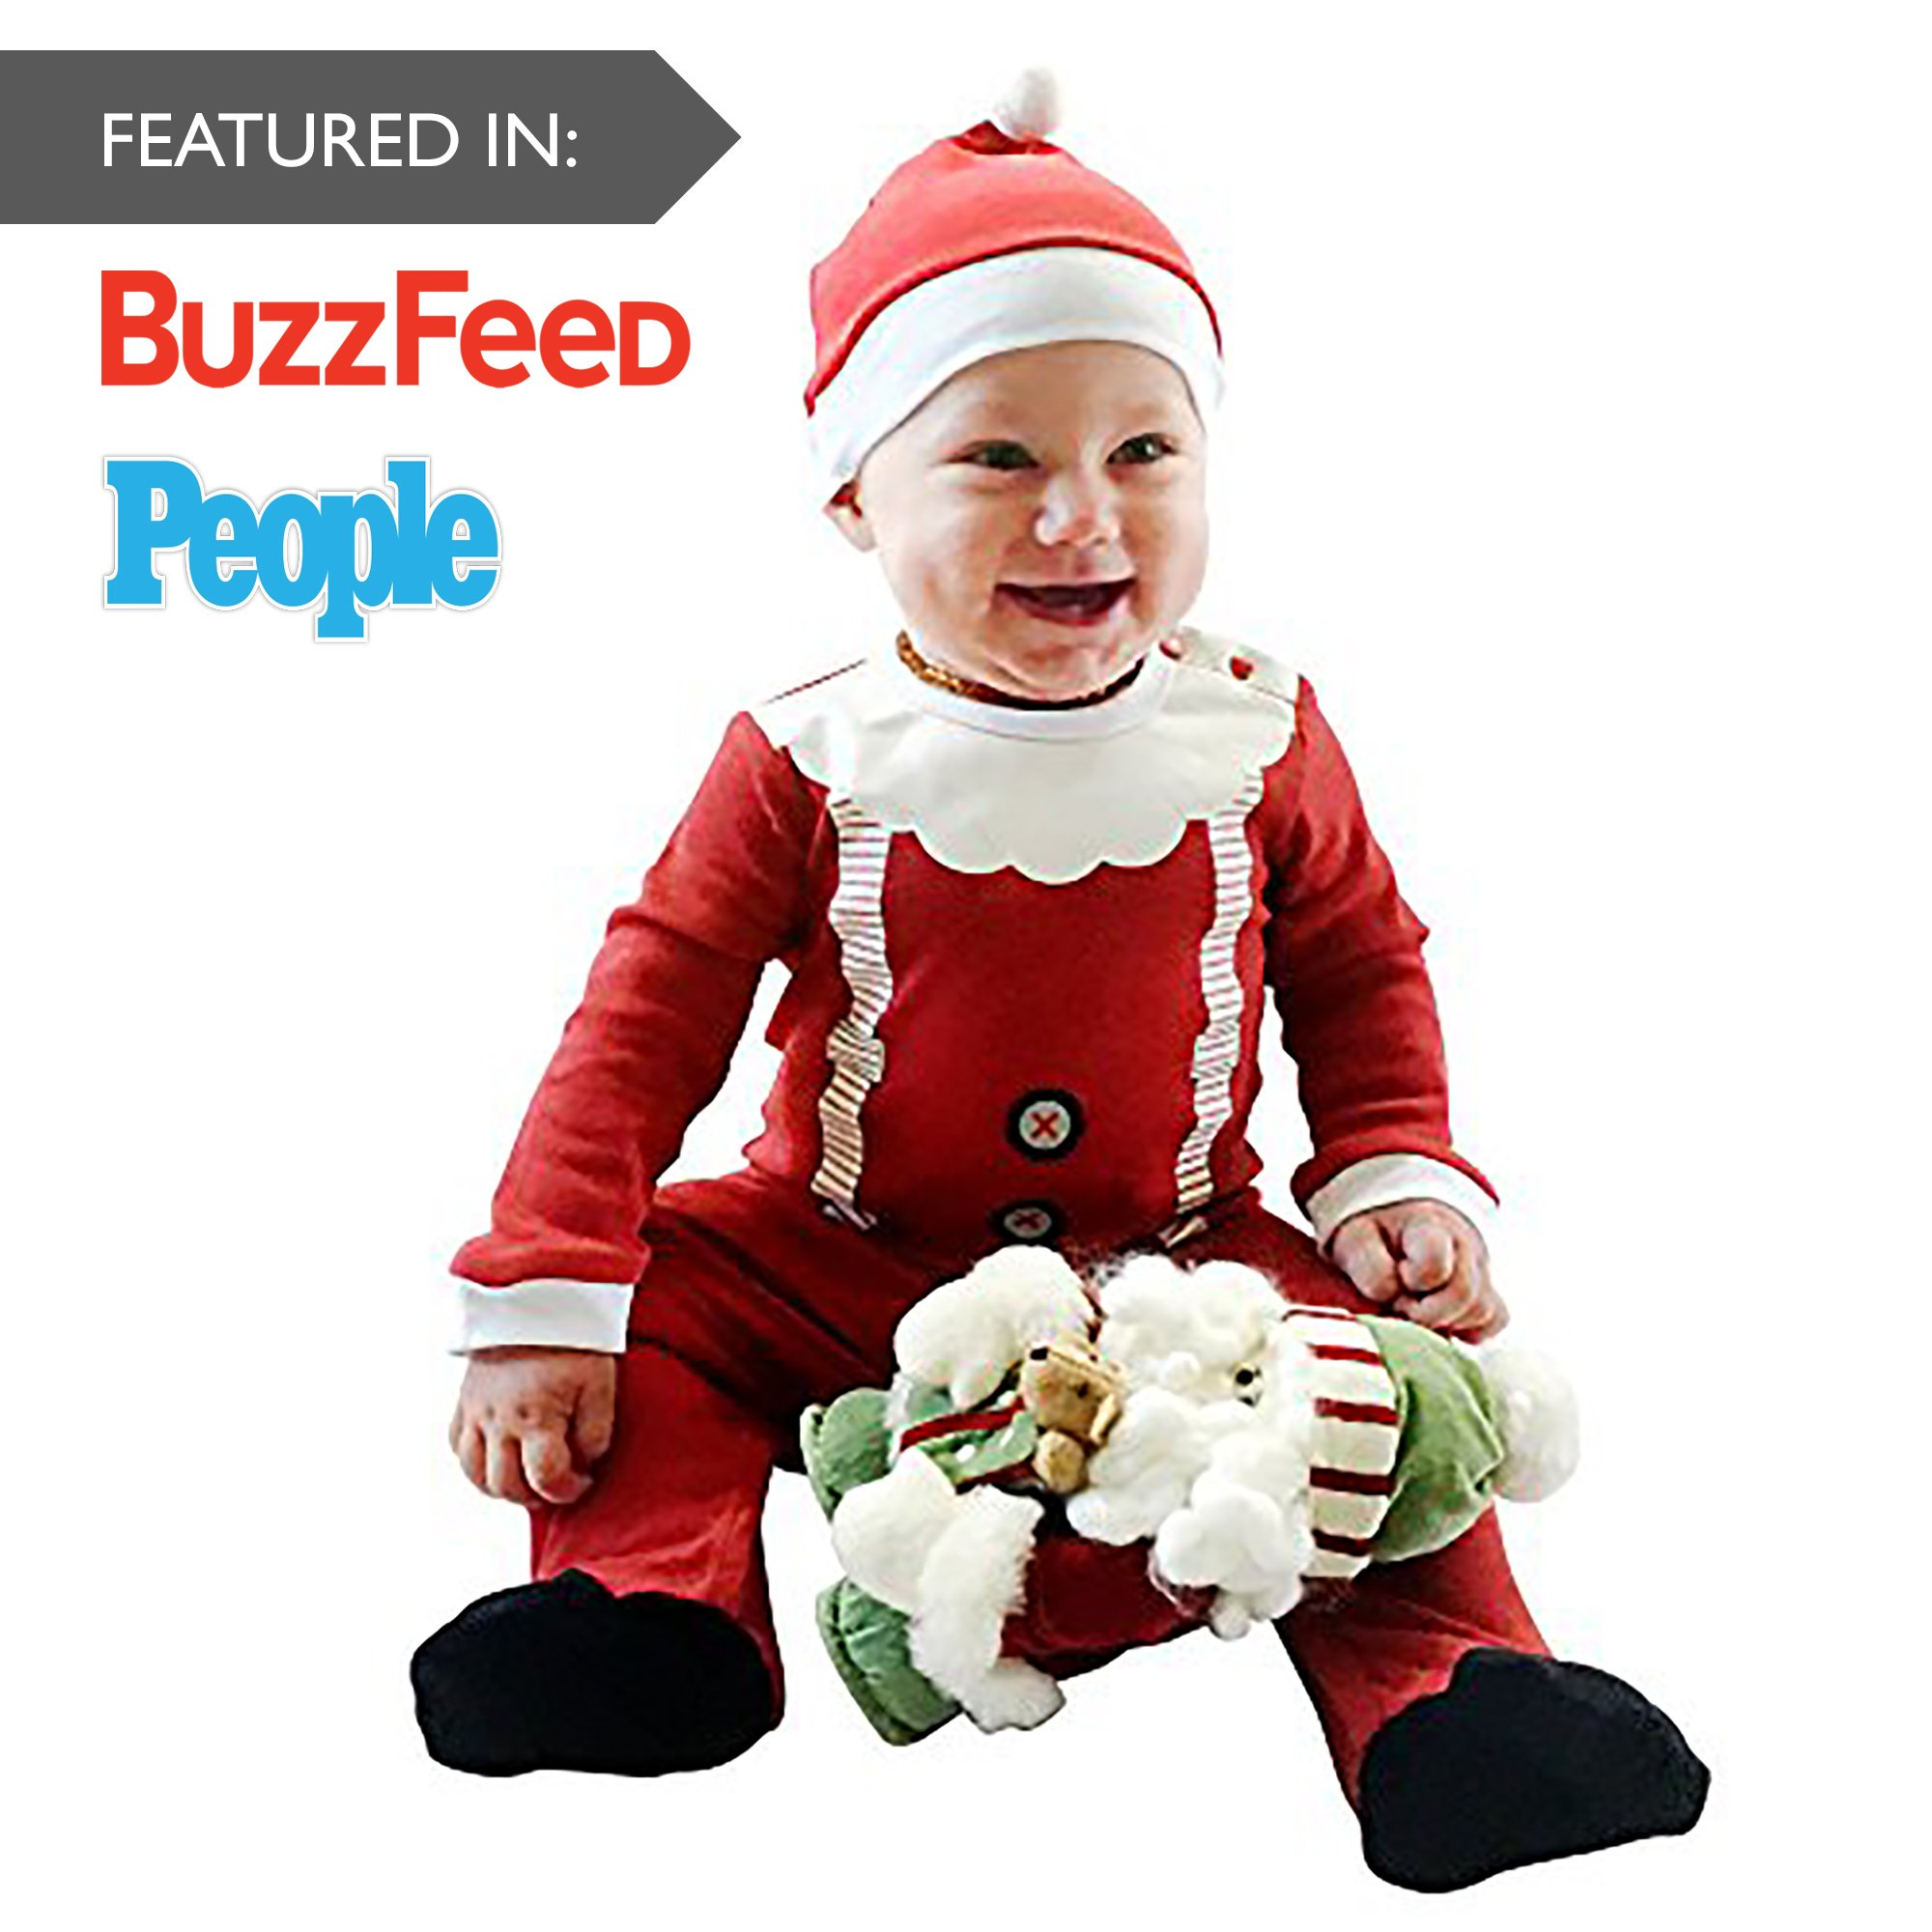 Fayfaire Christmas Pajamas Boutique Quality: Adorable Xmas Santa Suit with Hat 6-12M by Fayfaire (Image #3)